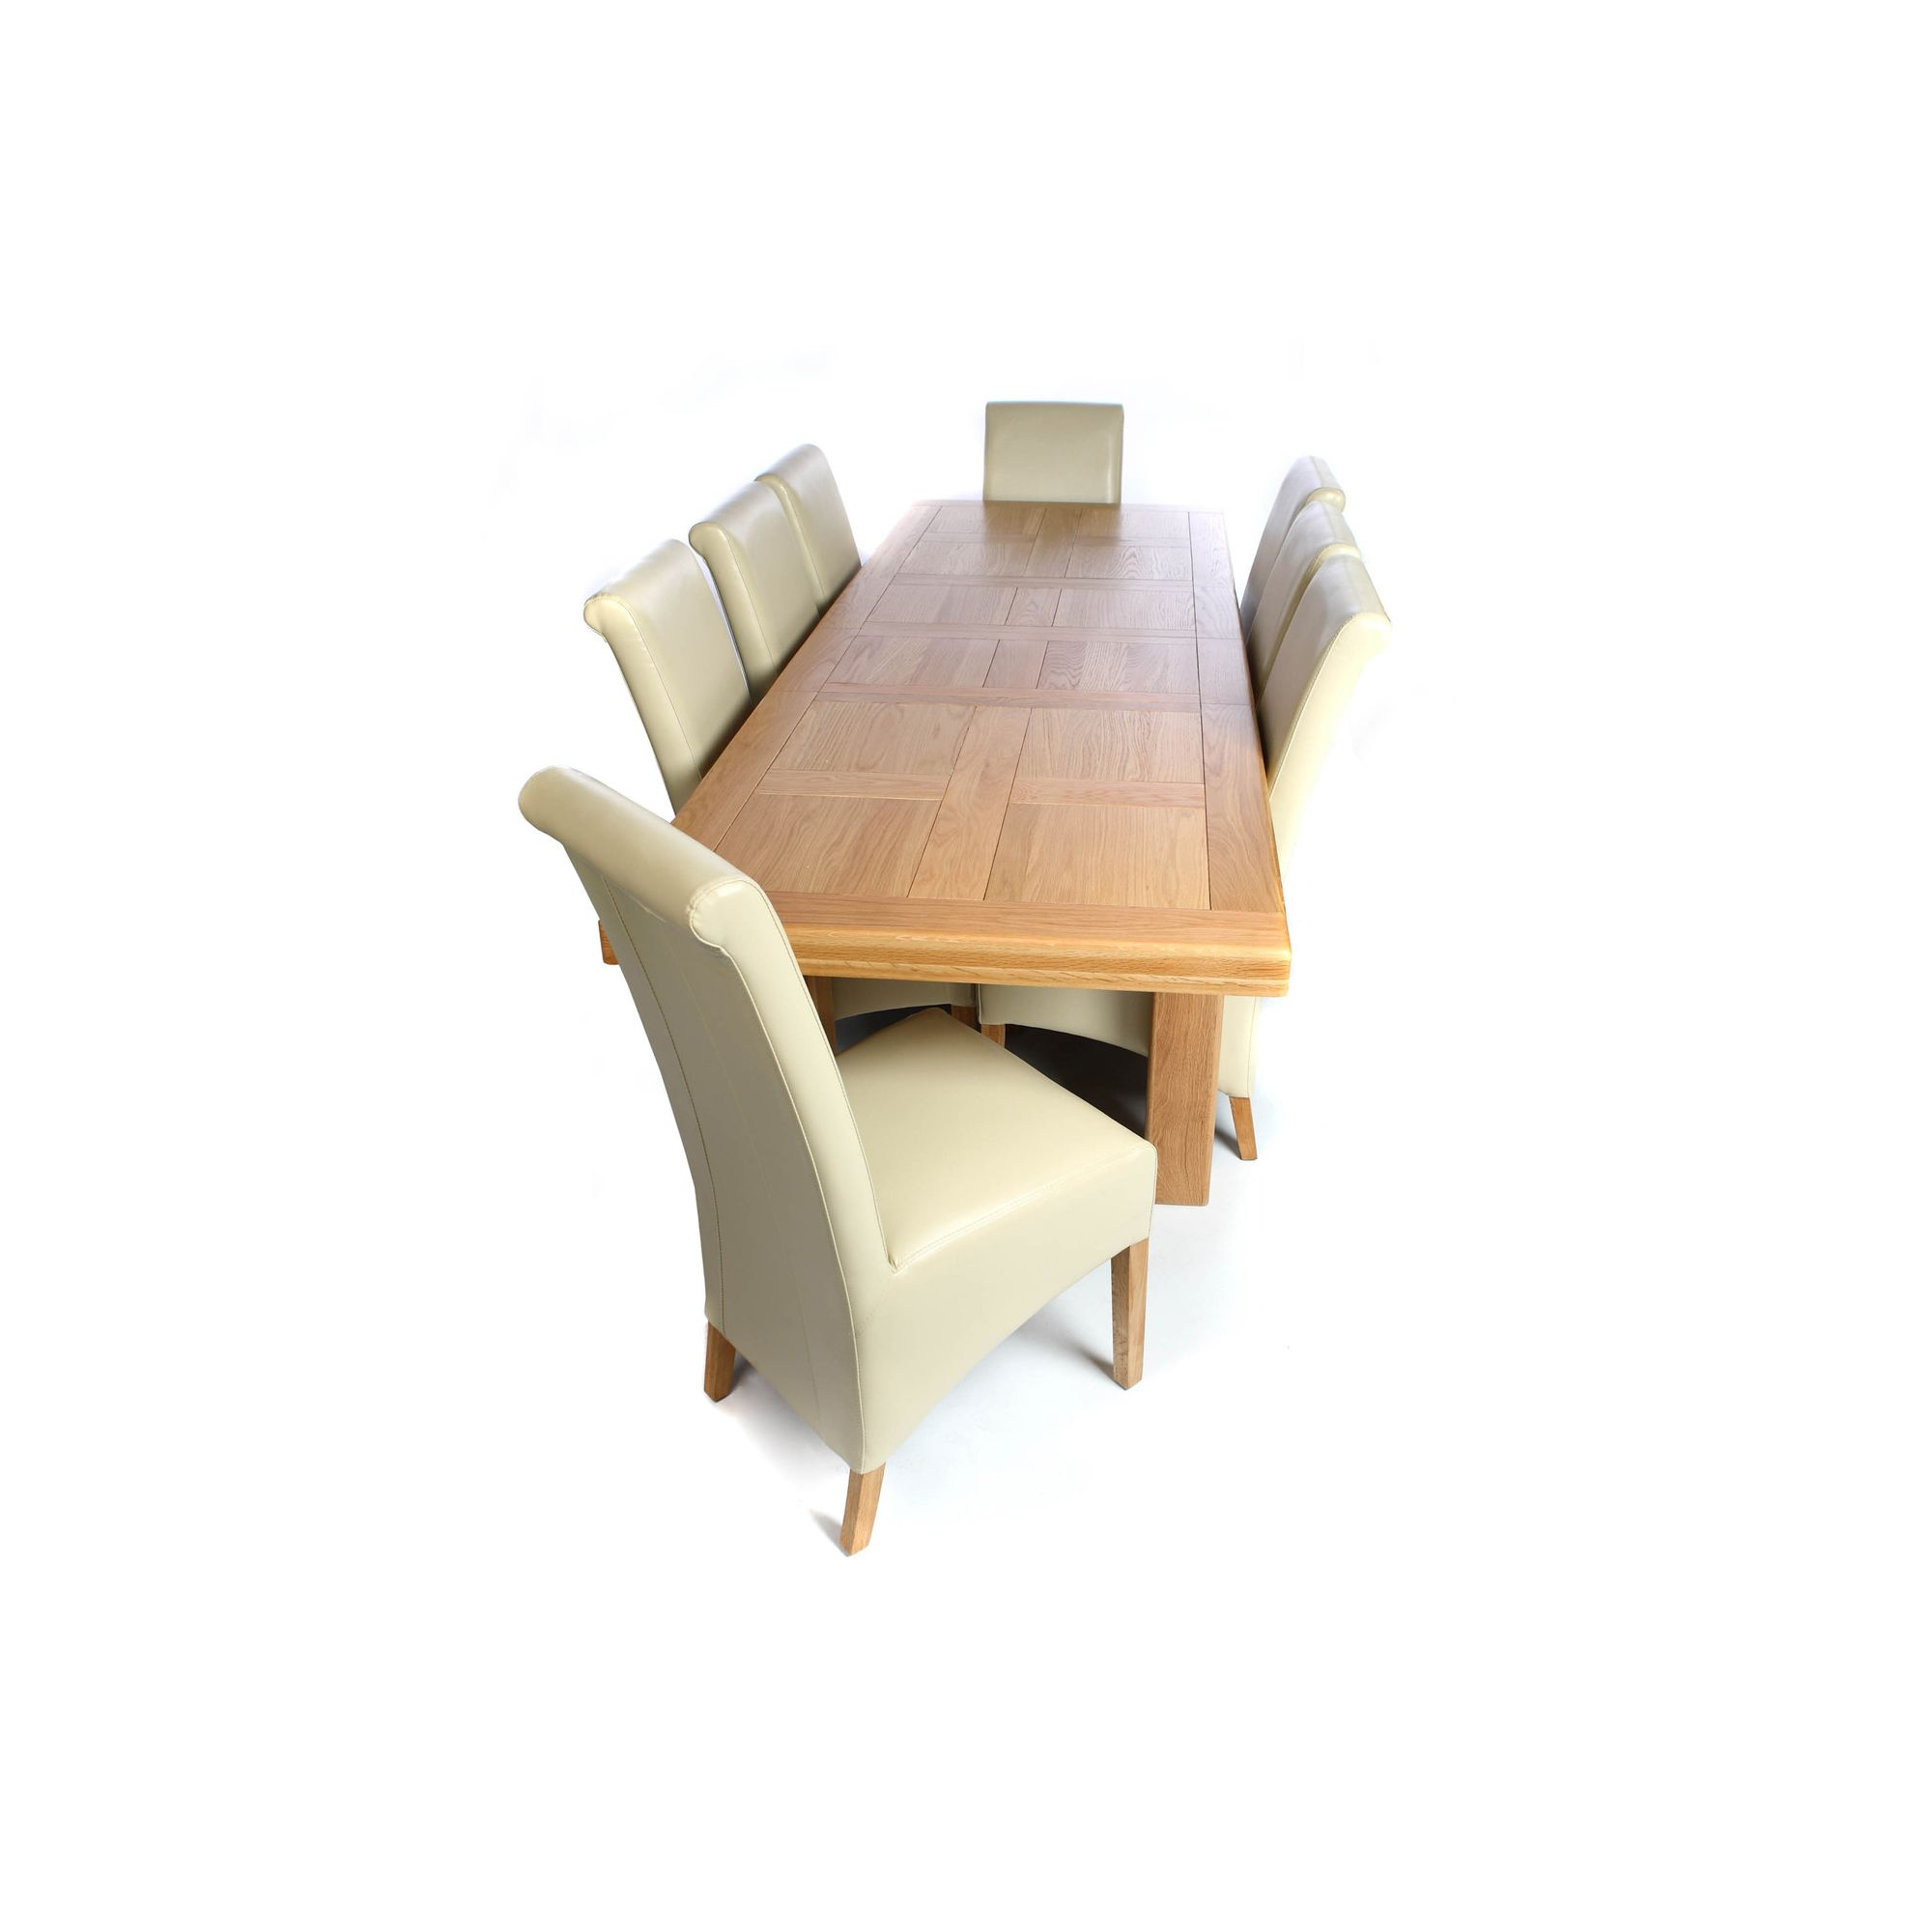 Shankar Enterprises Grand Marseille Extending Dining Table - Natural Oak - 180cm/260cm W x 90cm D